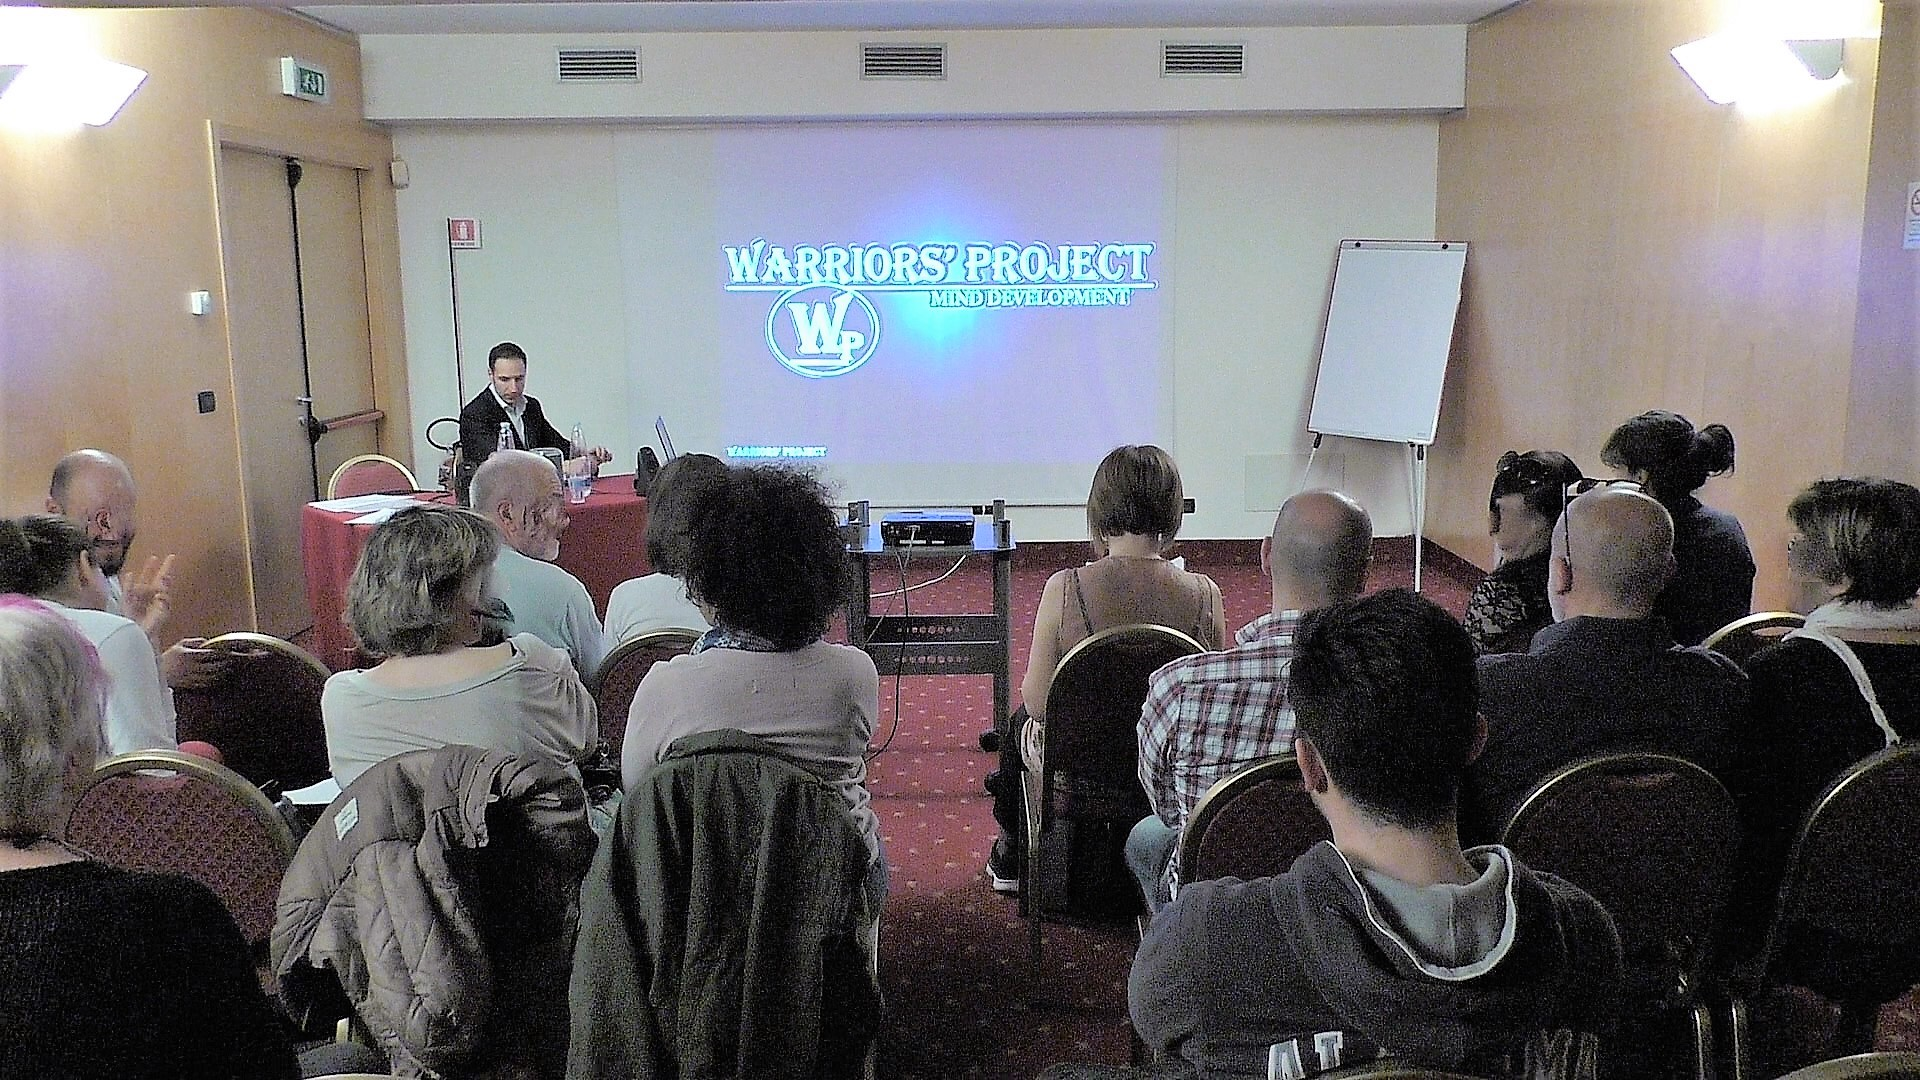 relatore-Vincenzo-Cento-parma-warriors-project-parma